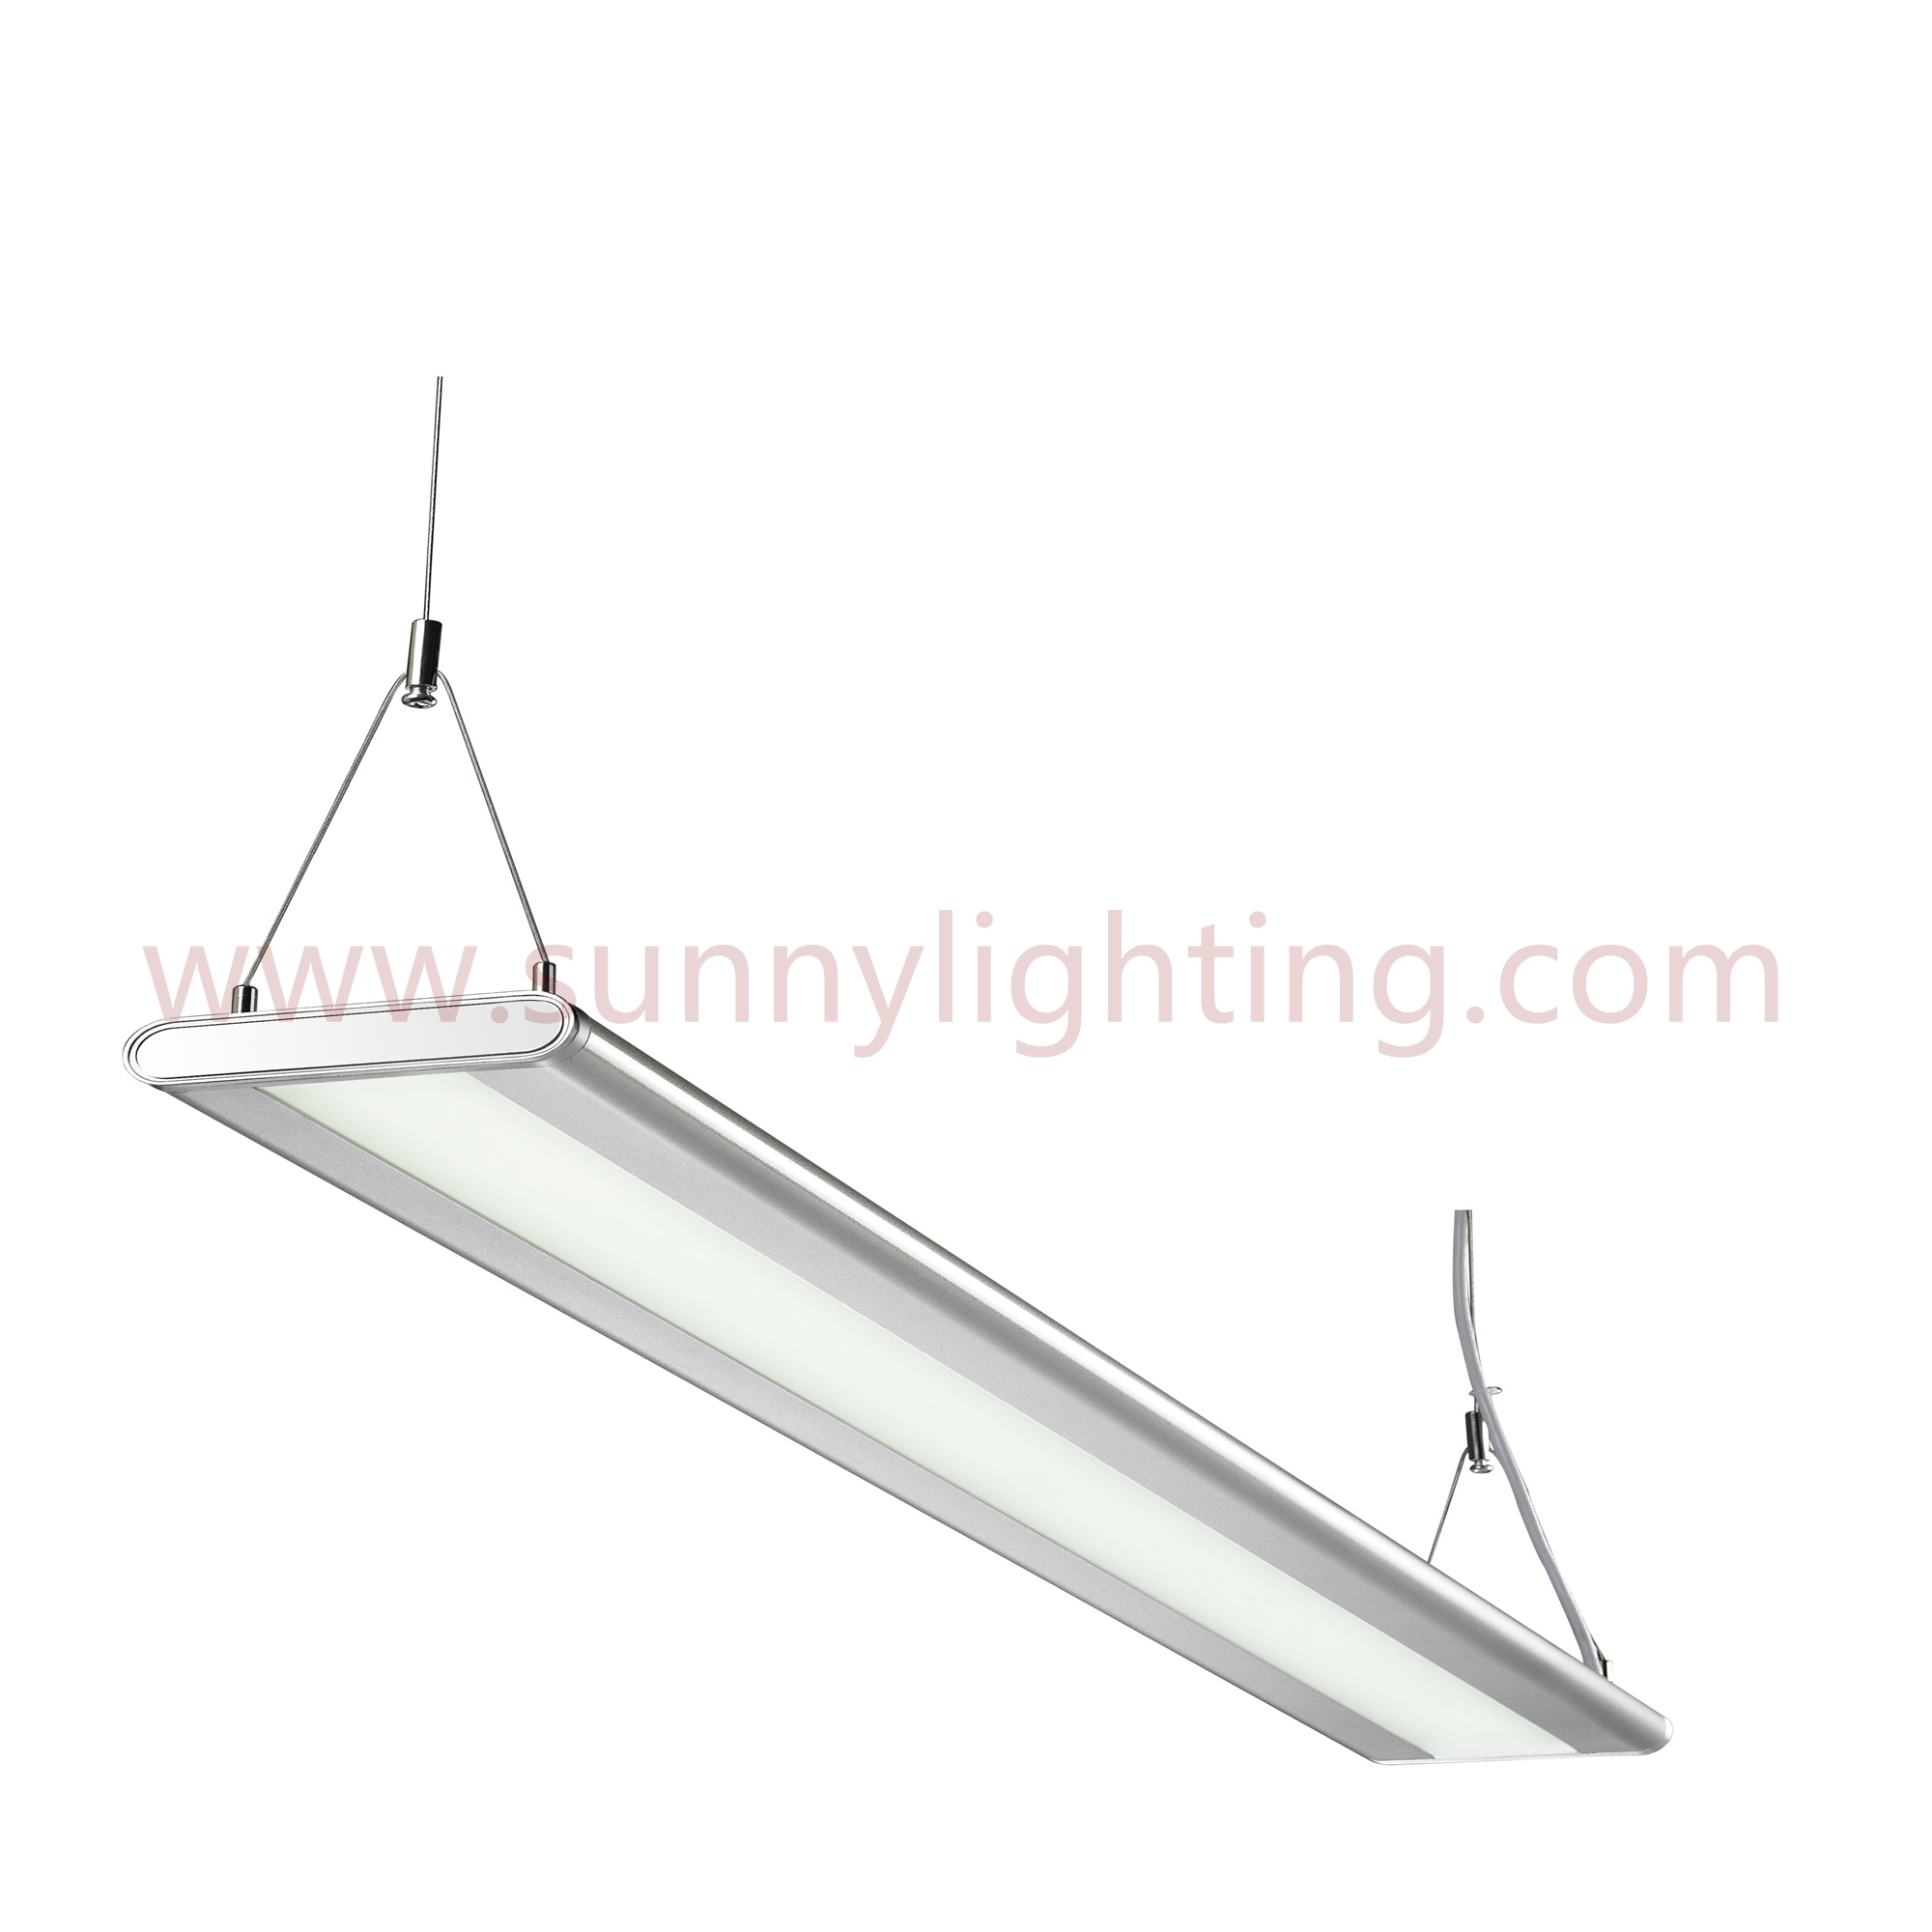 LED Linear Light 14.4W/21.6W/28.8W/36W LED-013